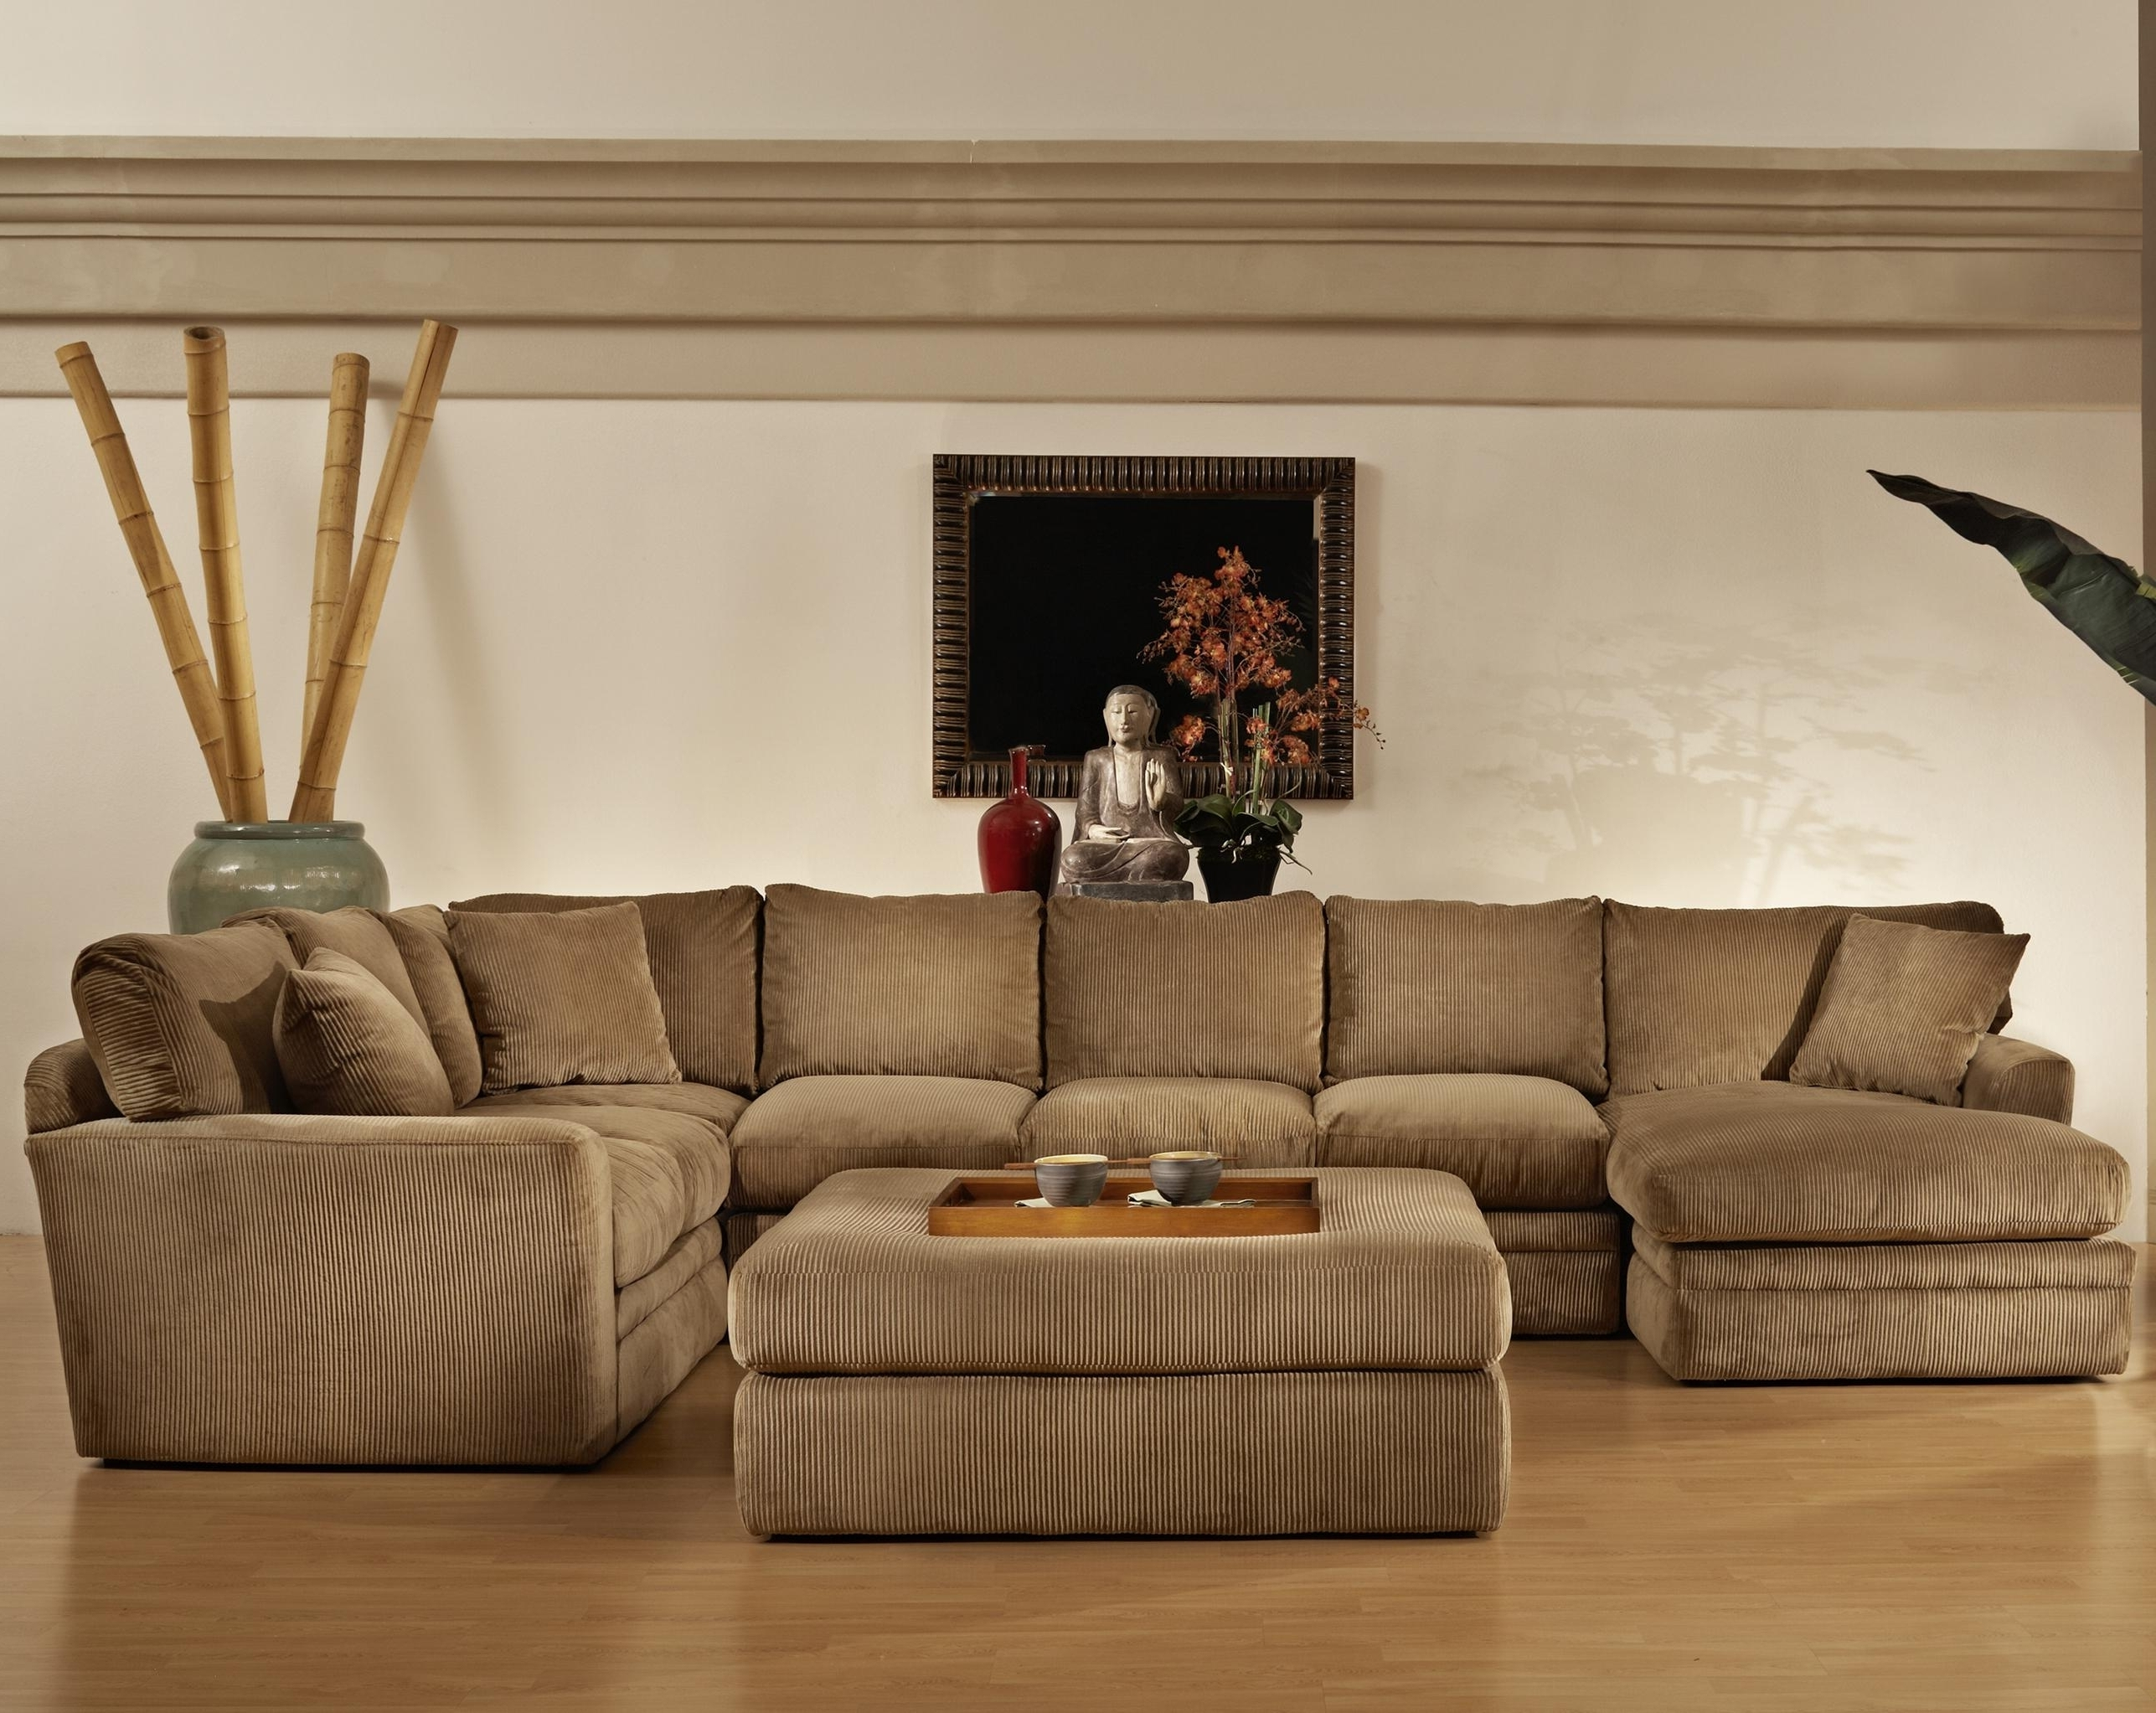 Popular Wide Seat Sectional Sofas In Transitional Style Extra Large Sectional Sofas With Chaise Baker (View 18 of 20)